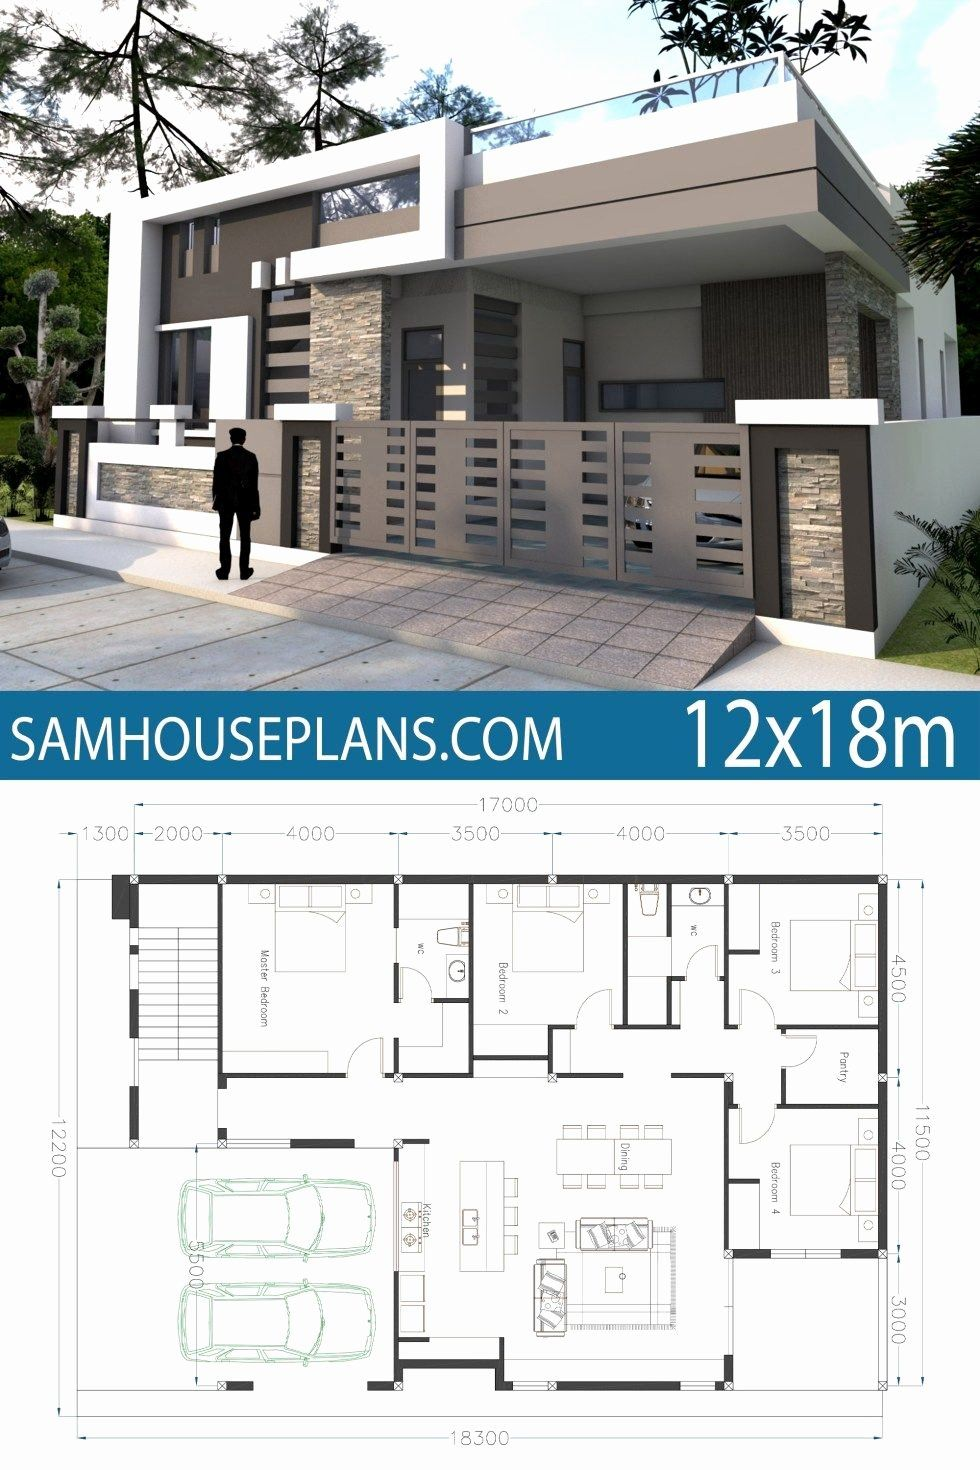 Simple House Plans 4 Bedroom Best Of Home Design 40x60f With 4 Bedrooms Single Floor House Design Small Modern House Plans Bungalow House Design